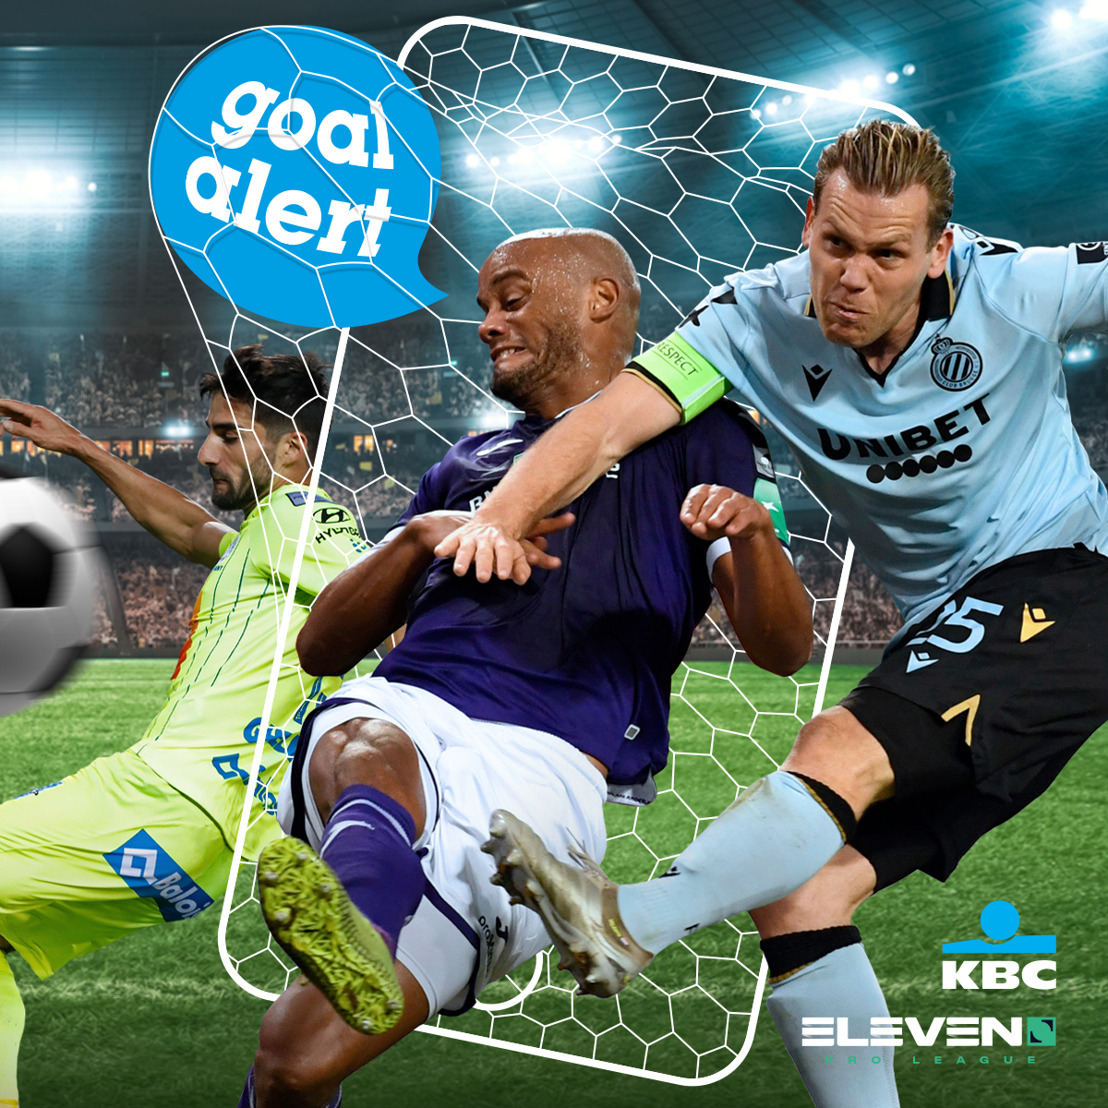 Starting today, Goal Alert in KBC Mobile lets you relive immediately all the key moments from the Jupiler Pro League in near-live time